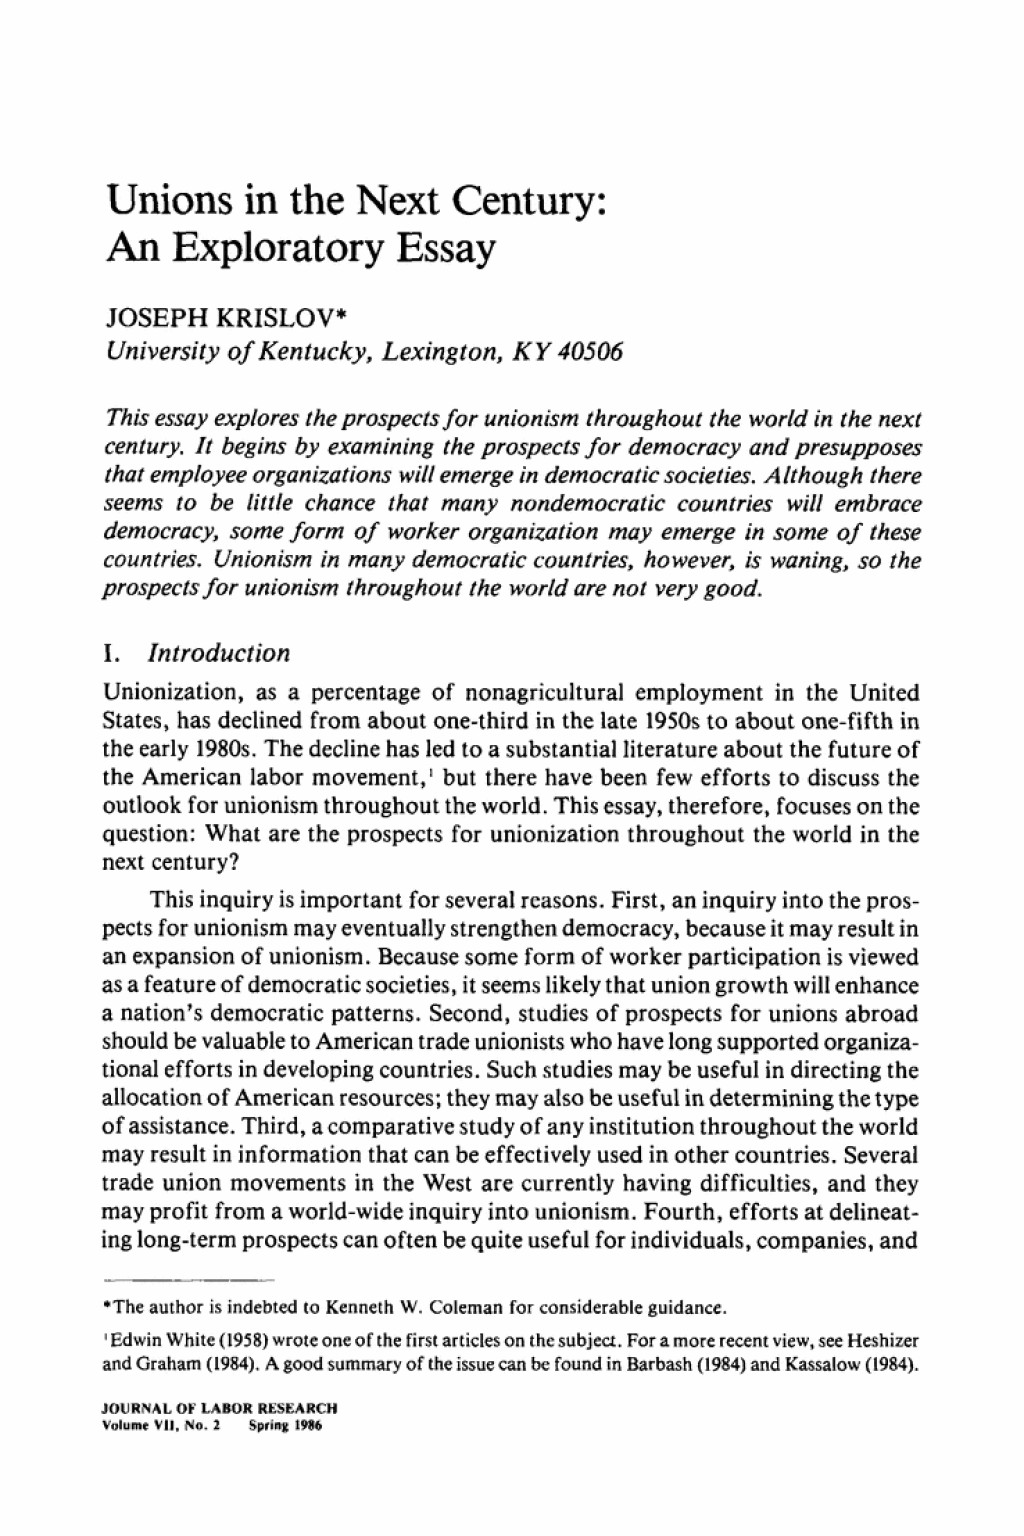 001 Exploratory Essay Example Unions In The Next Century An Springer L Stunning Definition Topics About Sports Sample Pdf Large